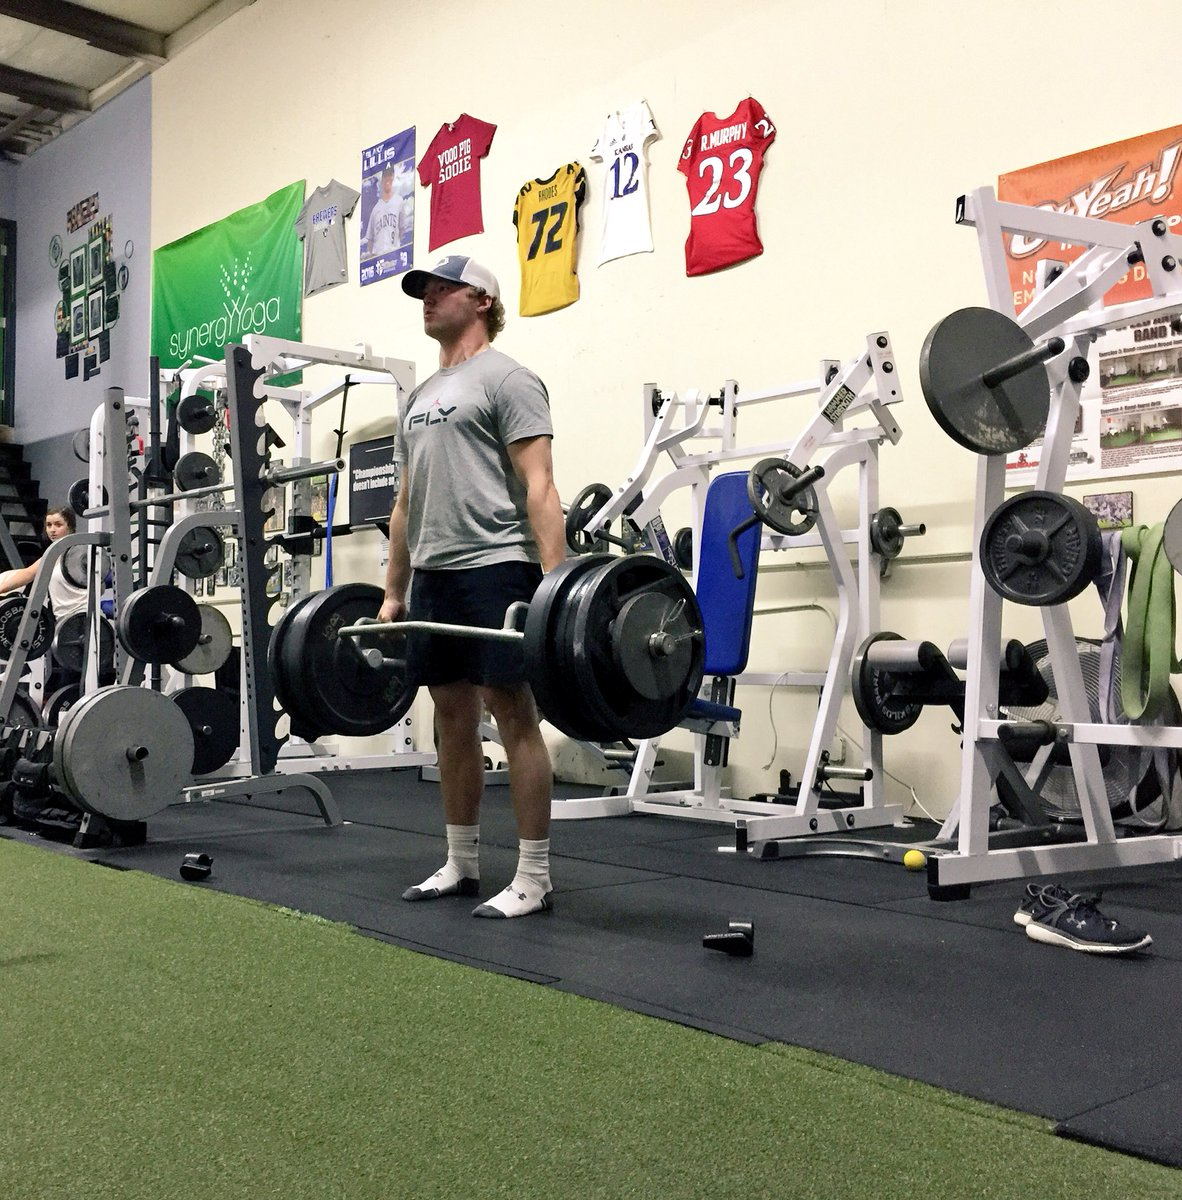 jcsd strength jcsd strength twitter said by guys who don t mind losing their off season gains ie not dernie34 pic com j2bdldxnml at topspeed strength conditioning